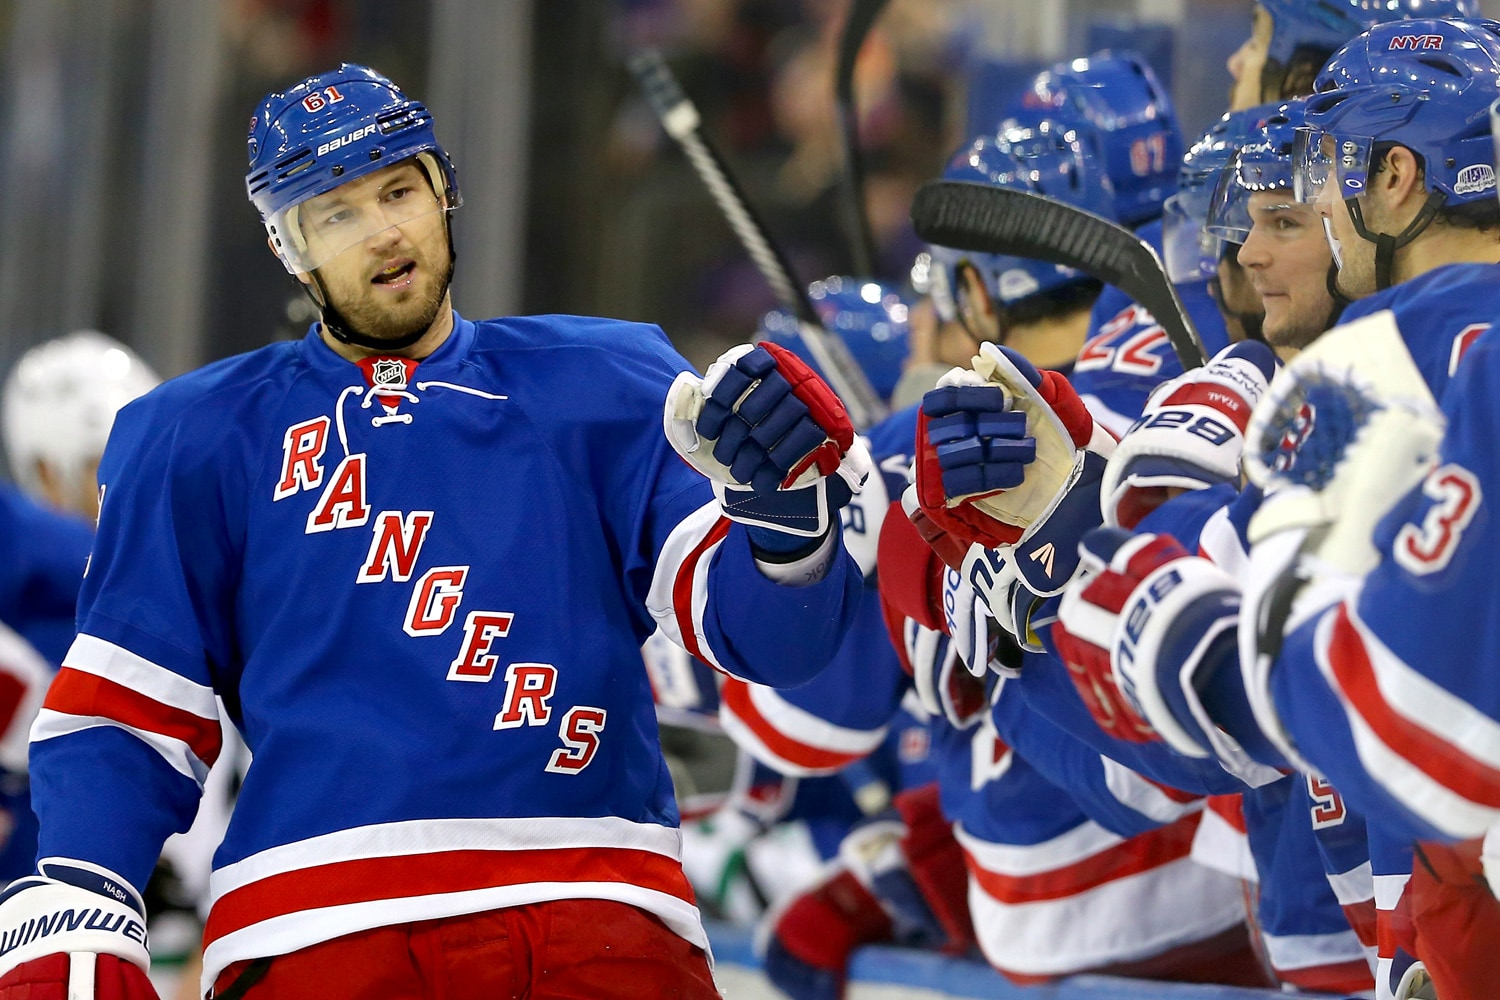 Nash is integral to the Rangers hopes for 2015